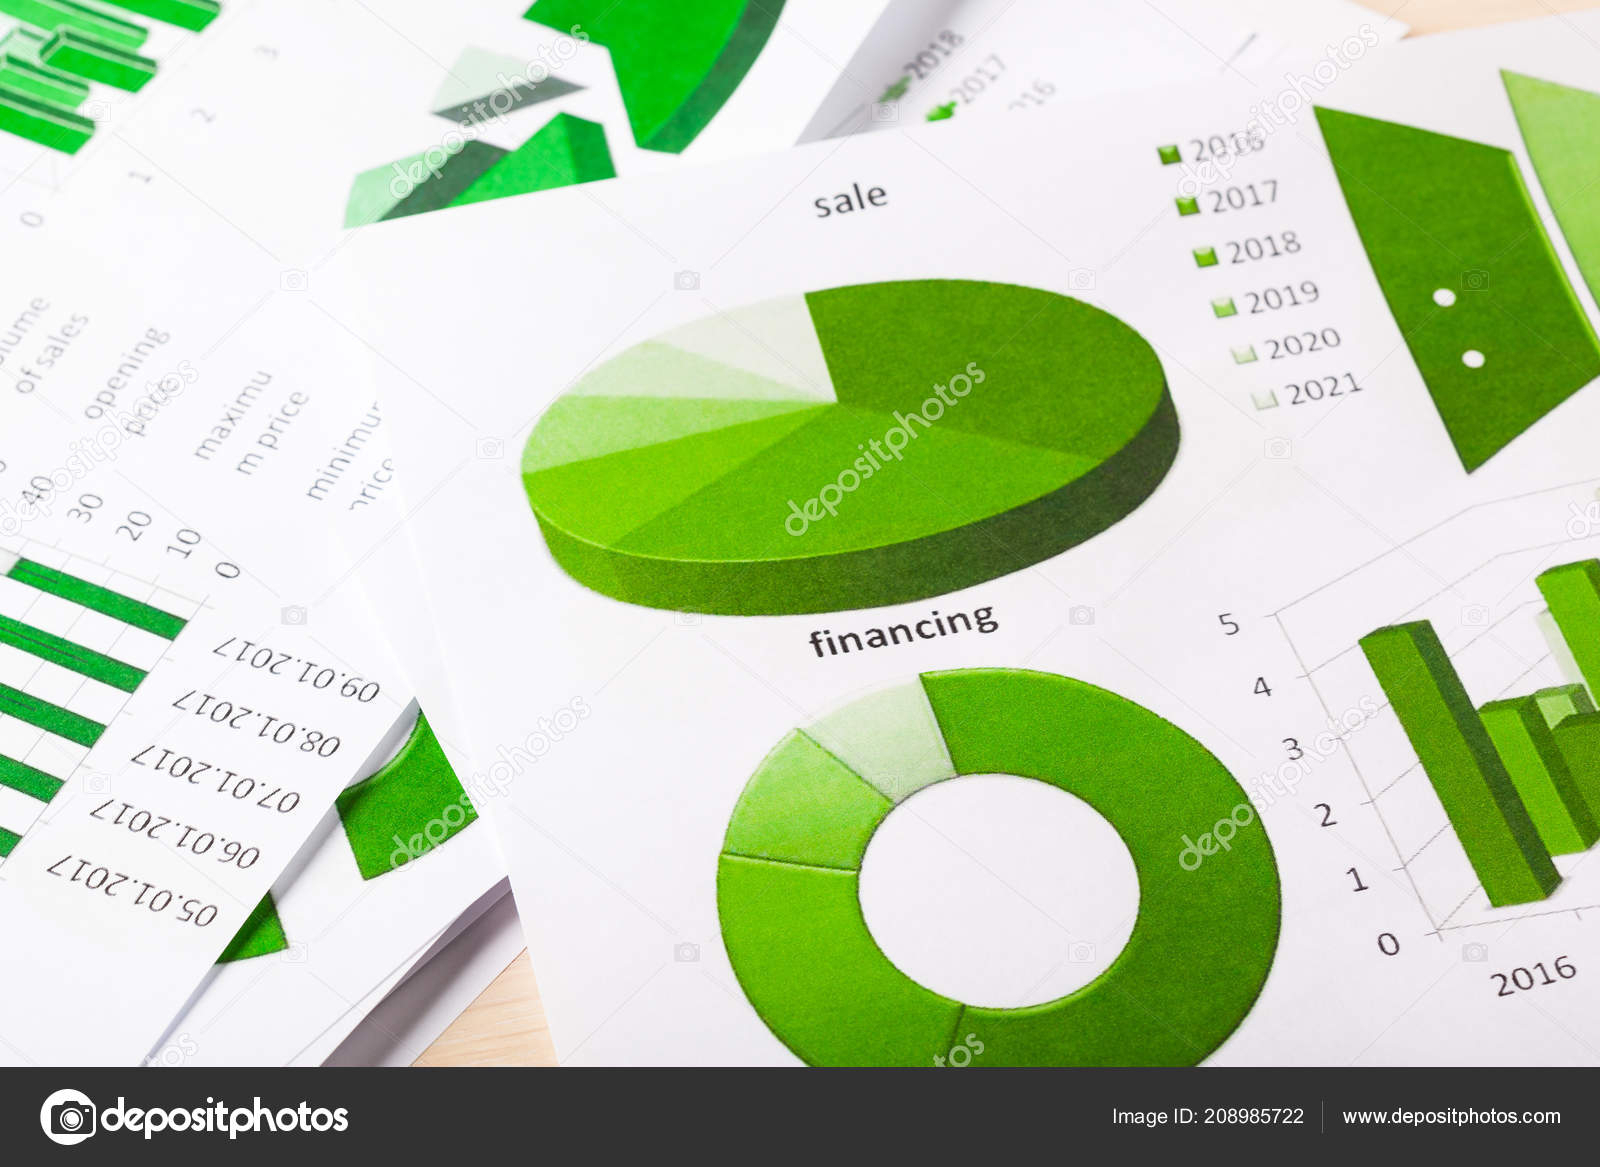 Close-Up View Of Business Charts And Graphs 208985722 in Depo Chart 2021